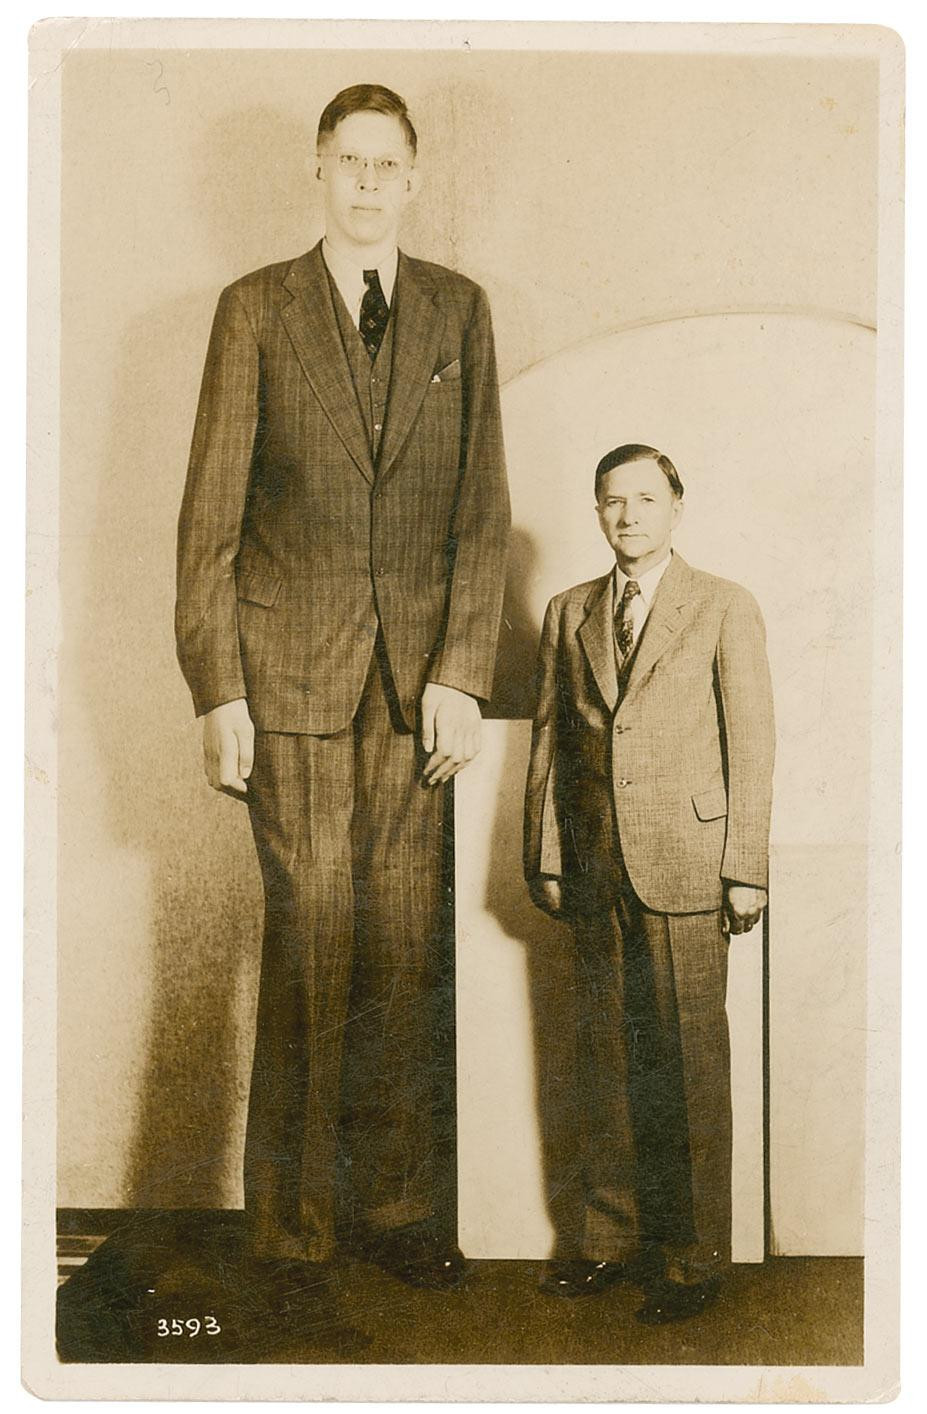 Robert Wadlow with his father